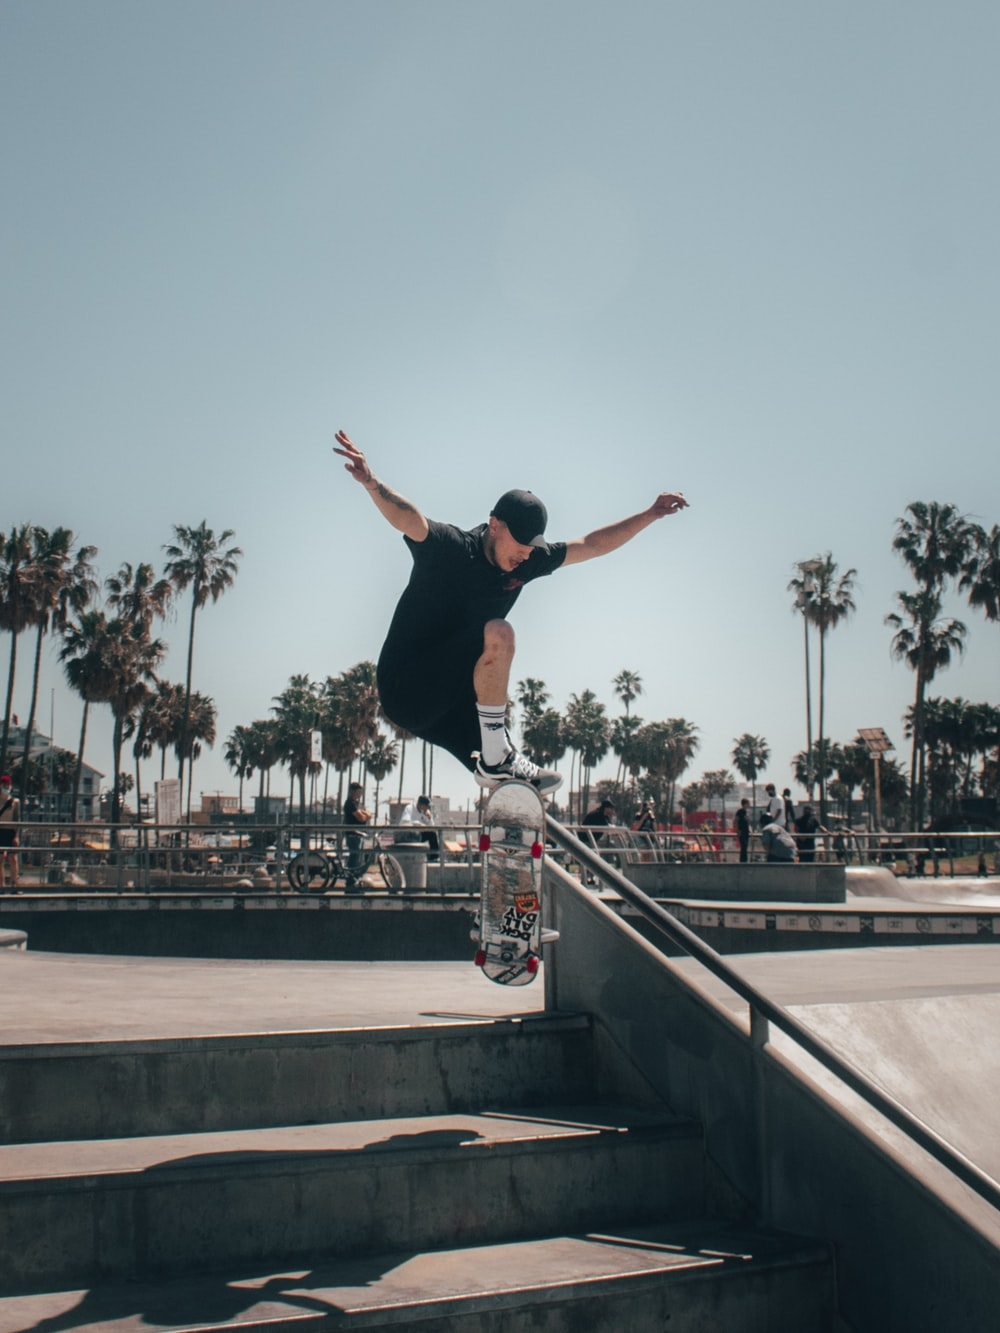 man in black tank top and black pants doing stunts on gray concrete stairs during daytime